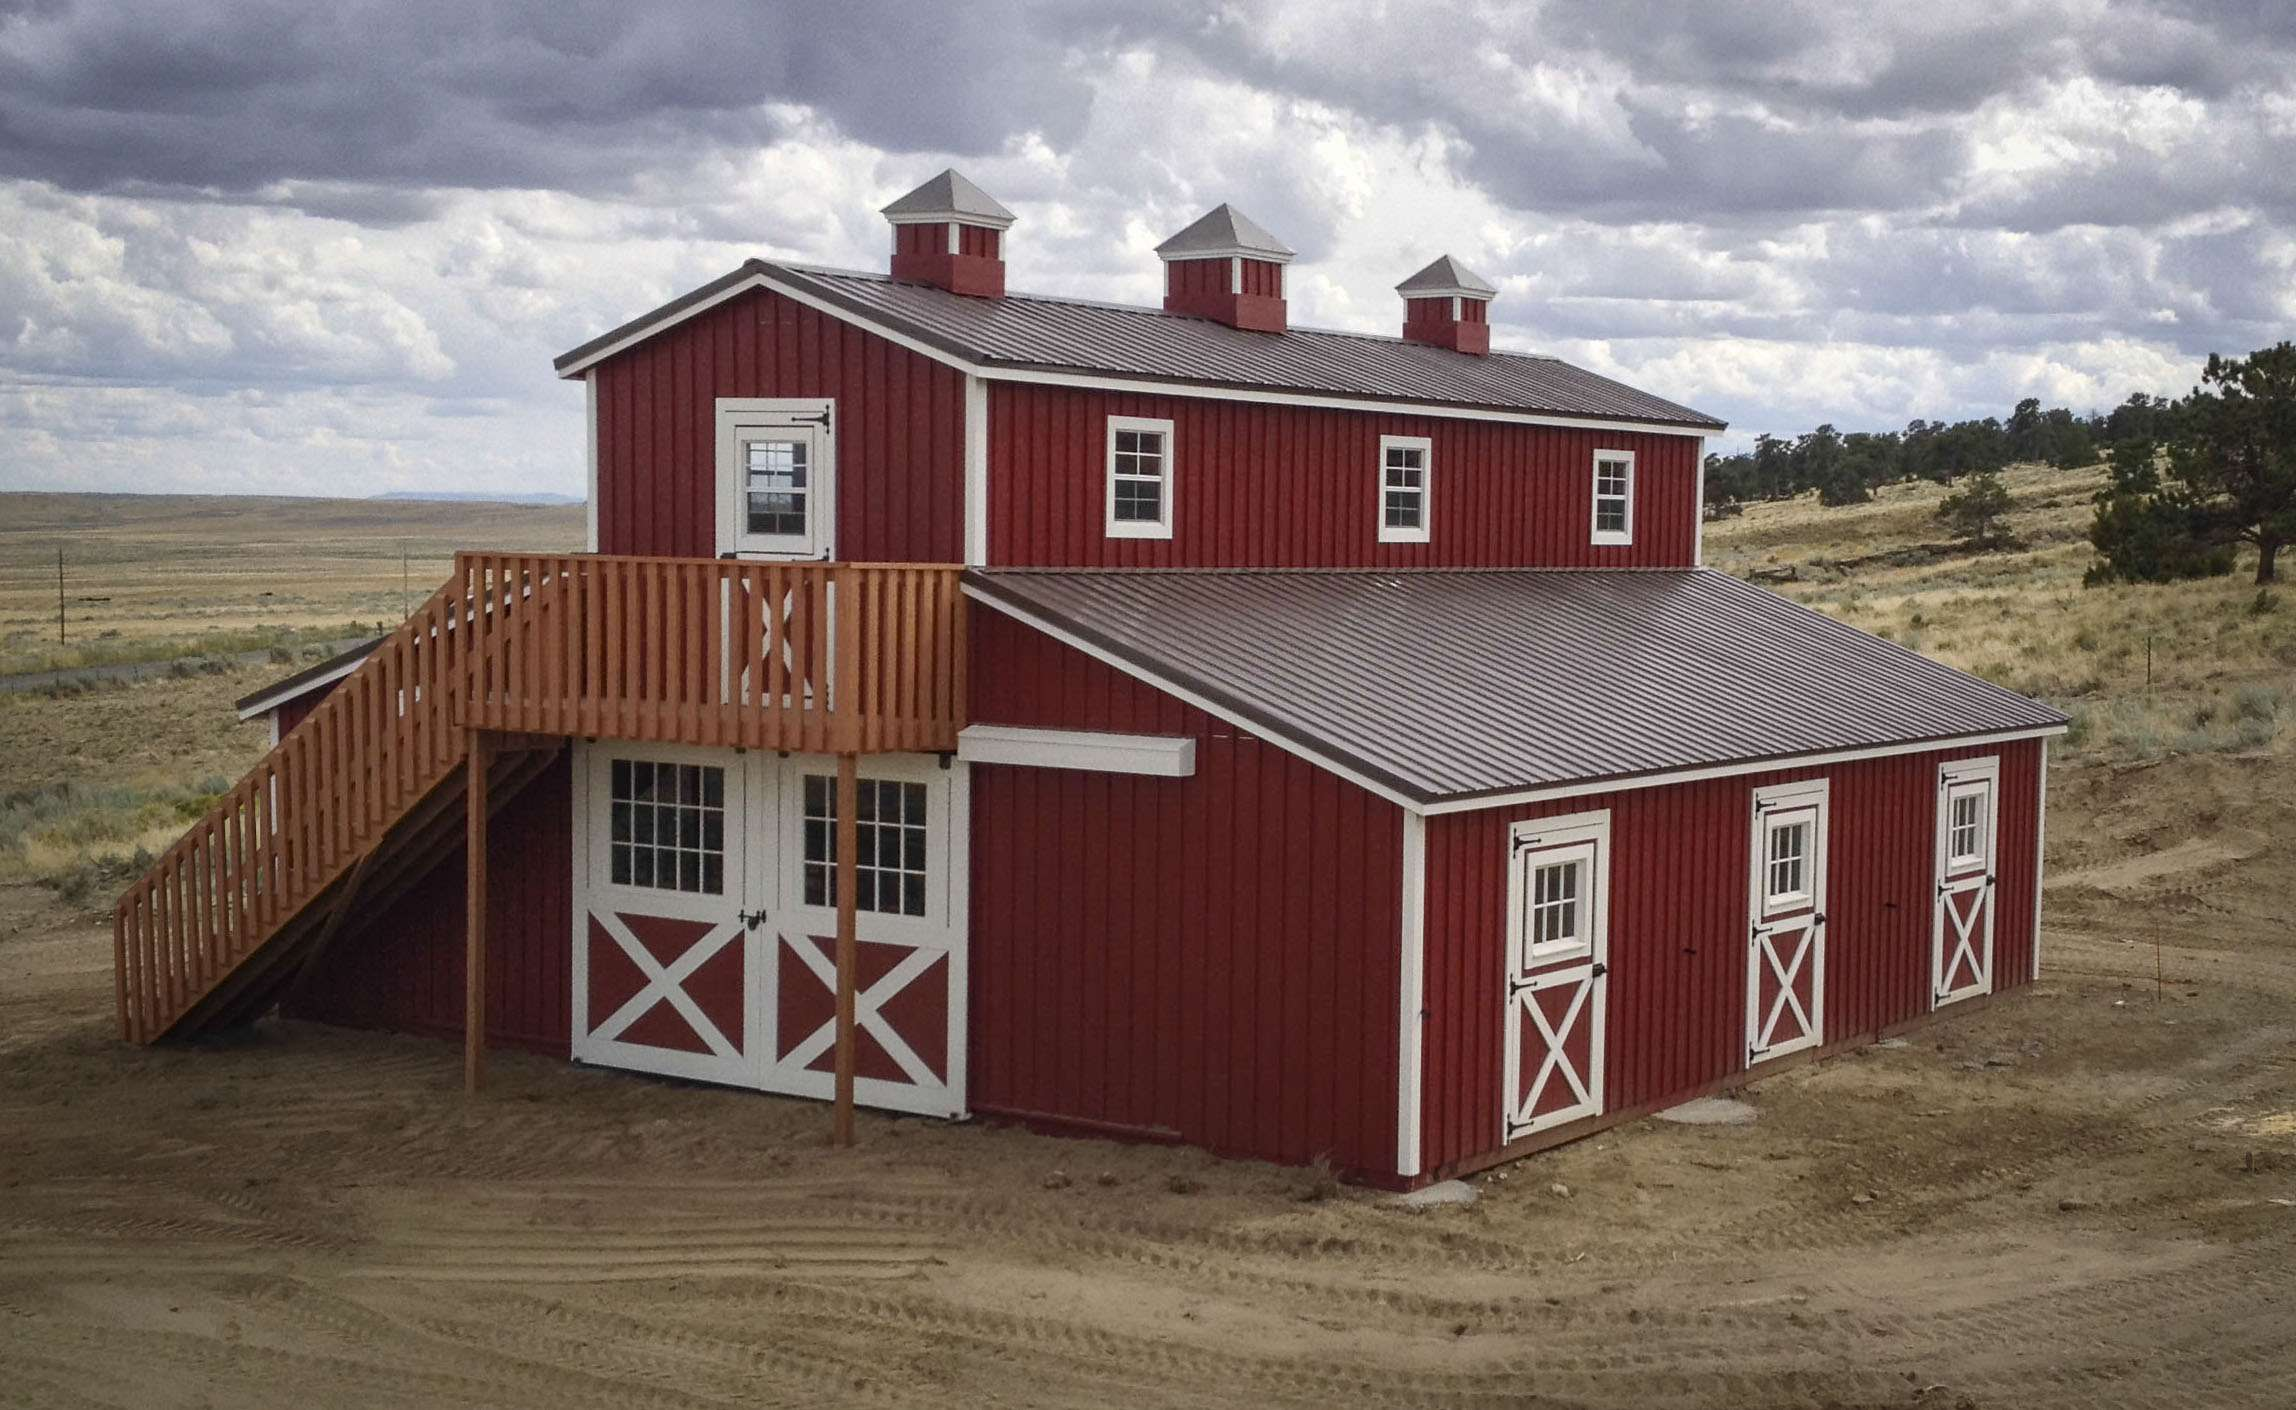 36 x 36 modular horse barn casper wy for Barn home builders near me